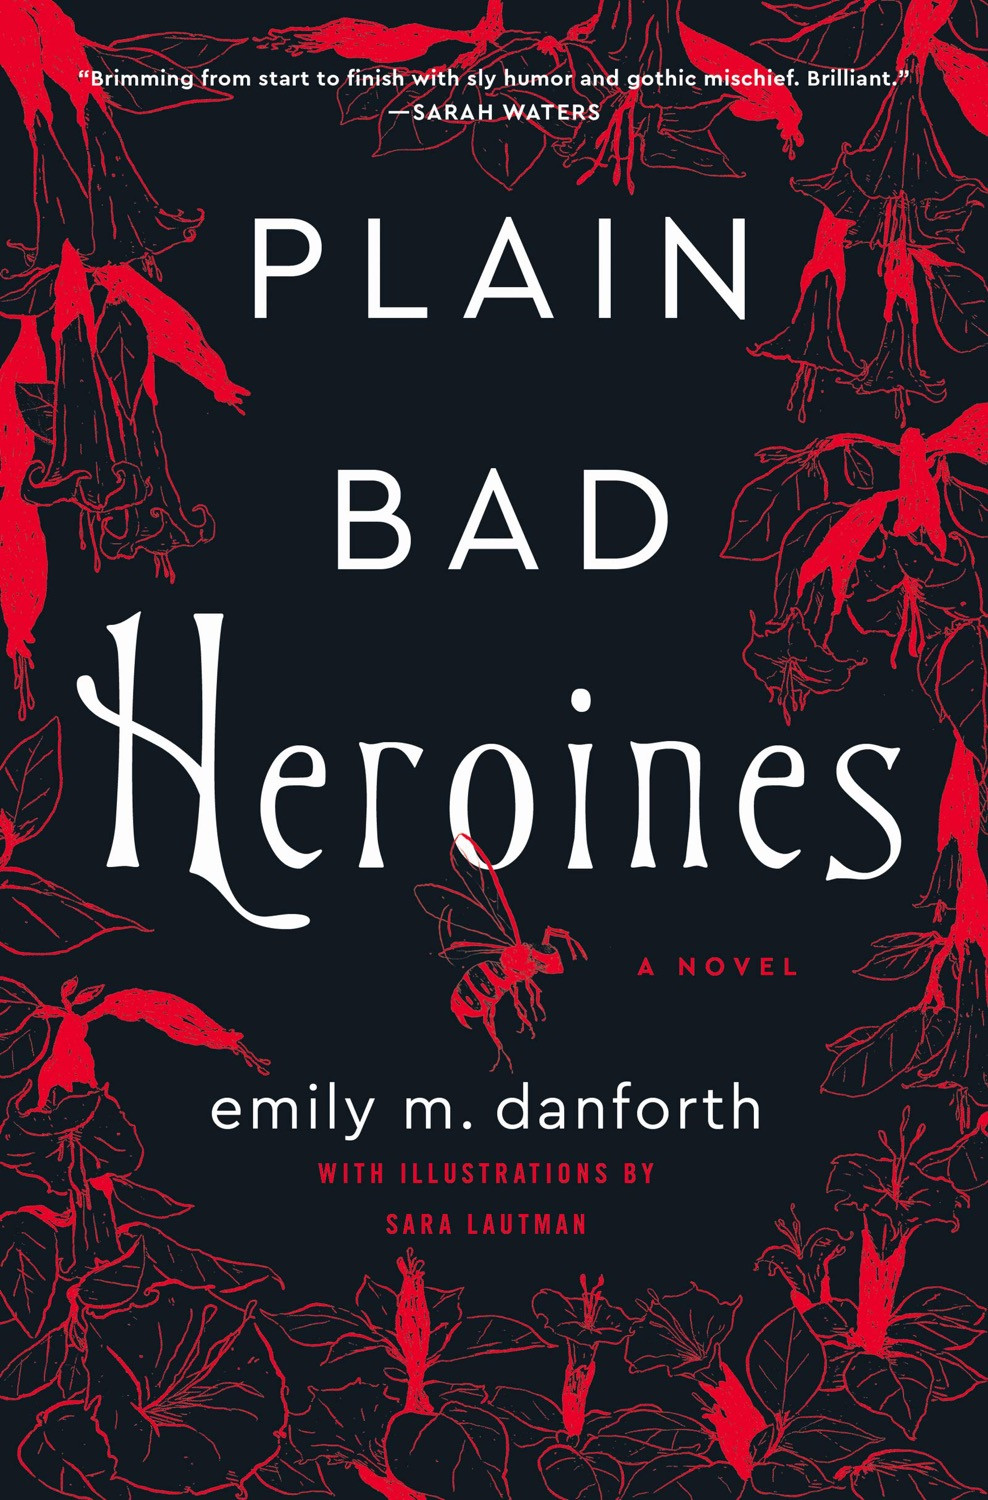 Book Cover: Plain Bad Heroines by Emily M. Danforth - 10 YA Books Out in October 2020 - Two Arts in a World